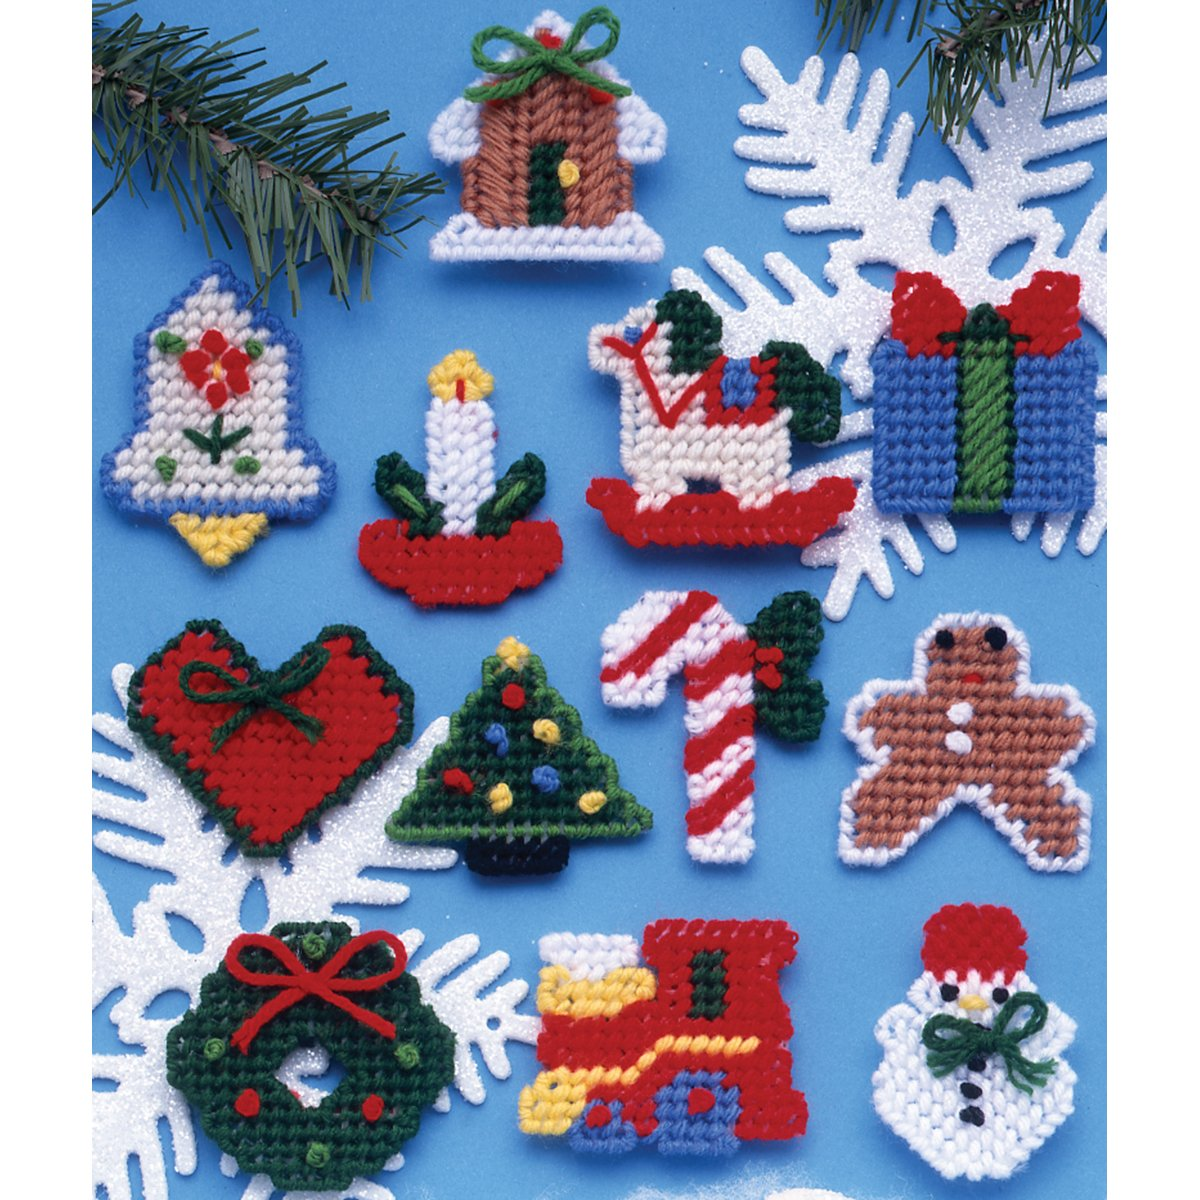 Country Christmas Decorations.Tobin 1221 Country Christmas Ornaments Plastic Canvas Kit 7 Count